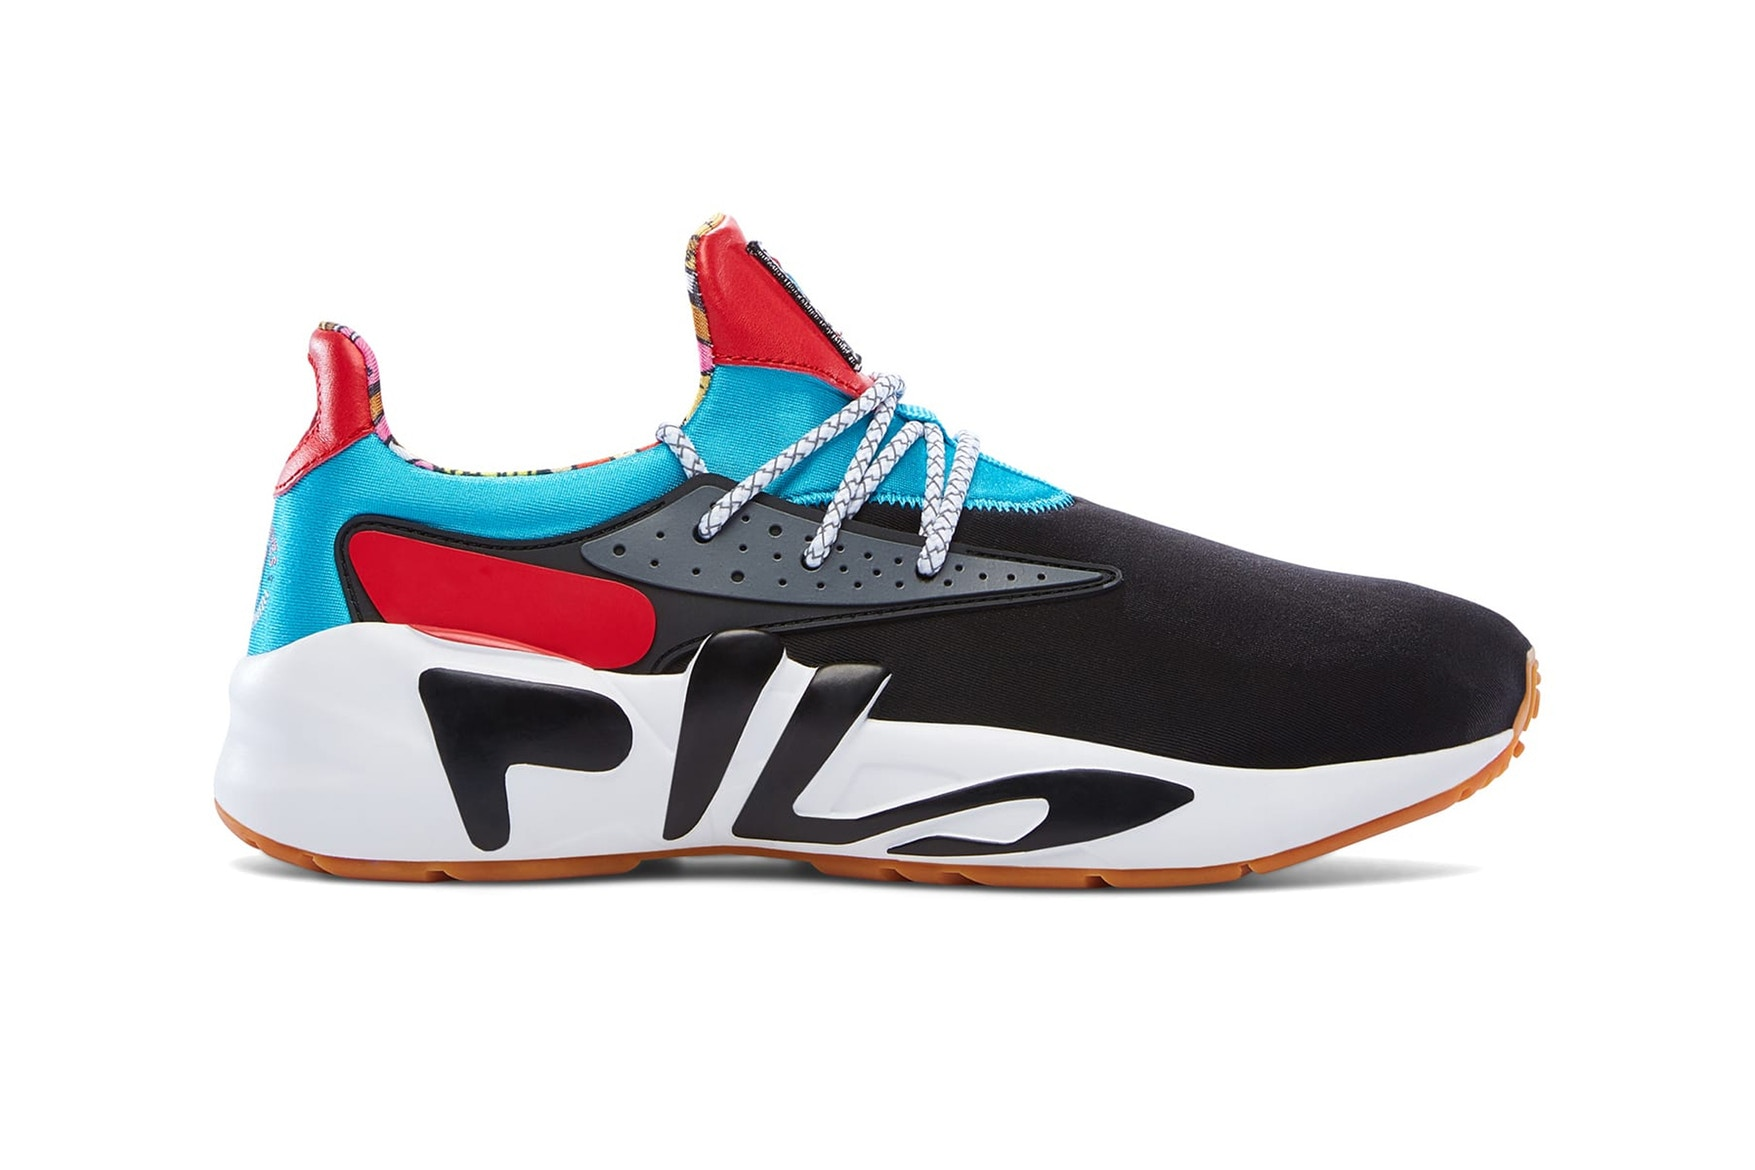 fila-revives-the-classic-mindblower-with-over-40-limited-edition-collaborations-21